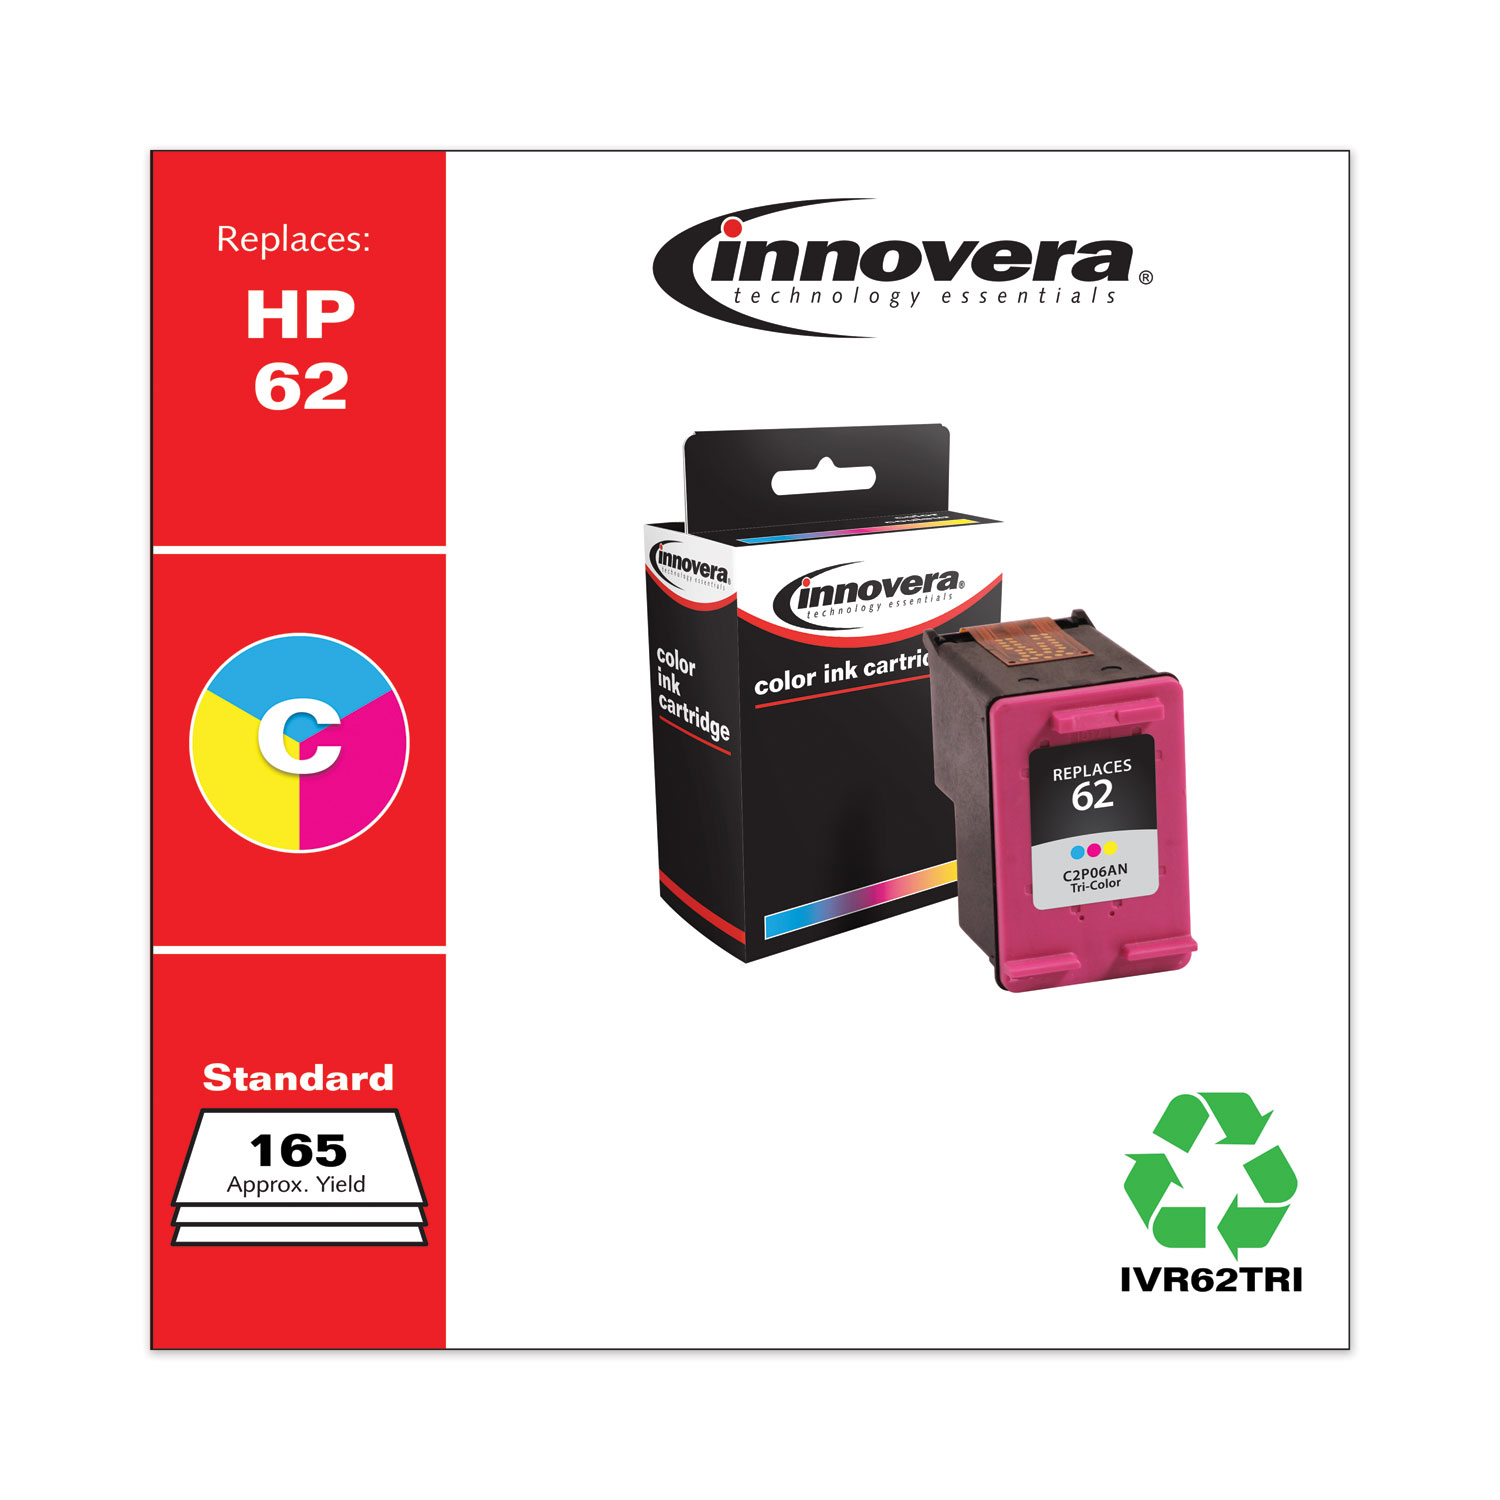 Remanufactured Tri-Color Ink, Replacement for HP 62 (C2P06AN), 165 Page-Yield IVR62TRI